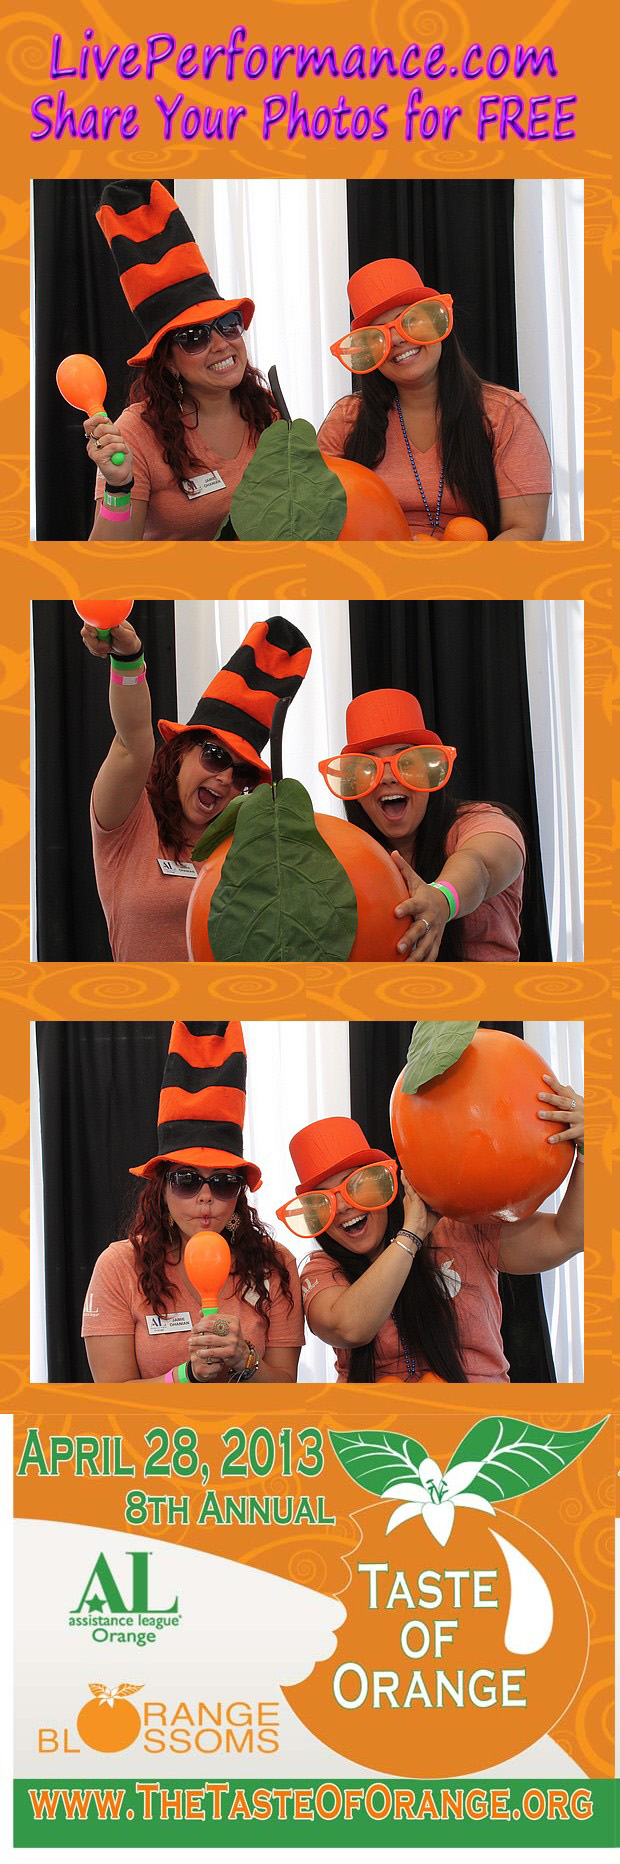 The Orange Blossoms Present the 2013 Taste of Orange - EYE Photo Booth PhotoStrips